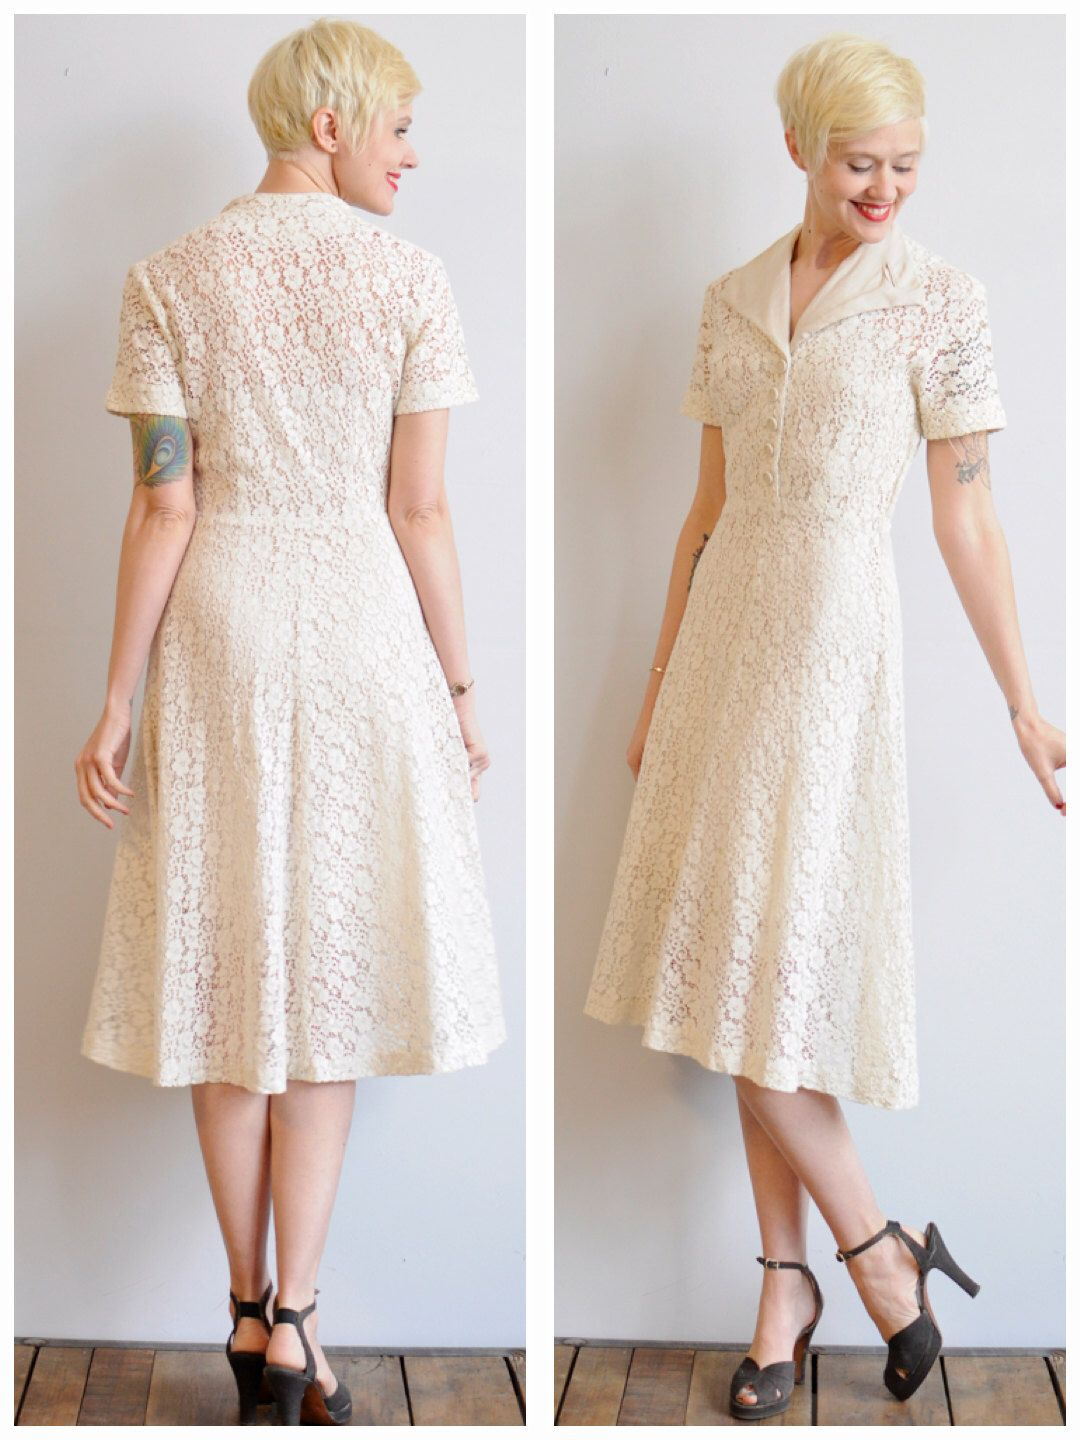 White lace dress vintage  s Dress  White Lilly Dress  vintage s cotton lace dress by